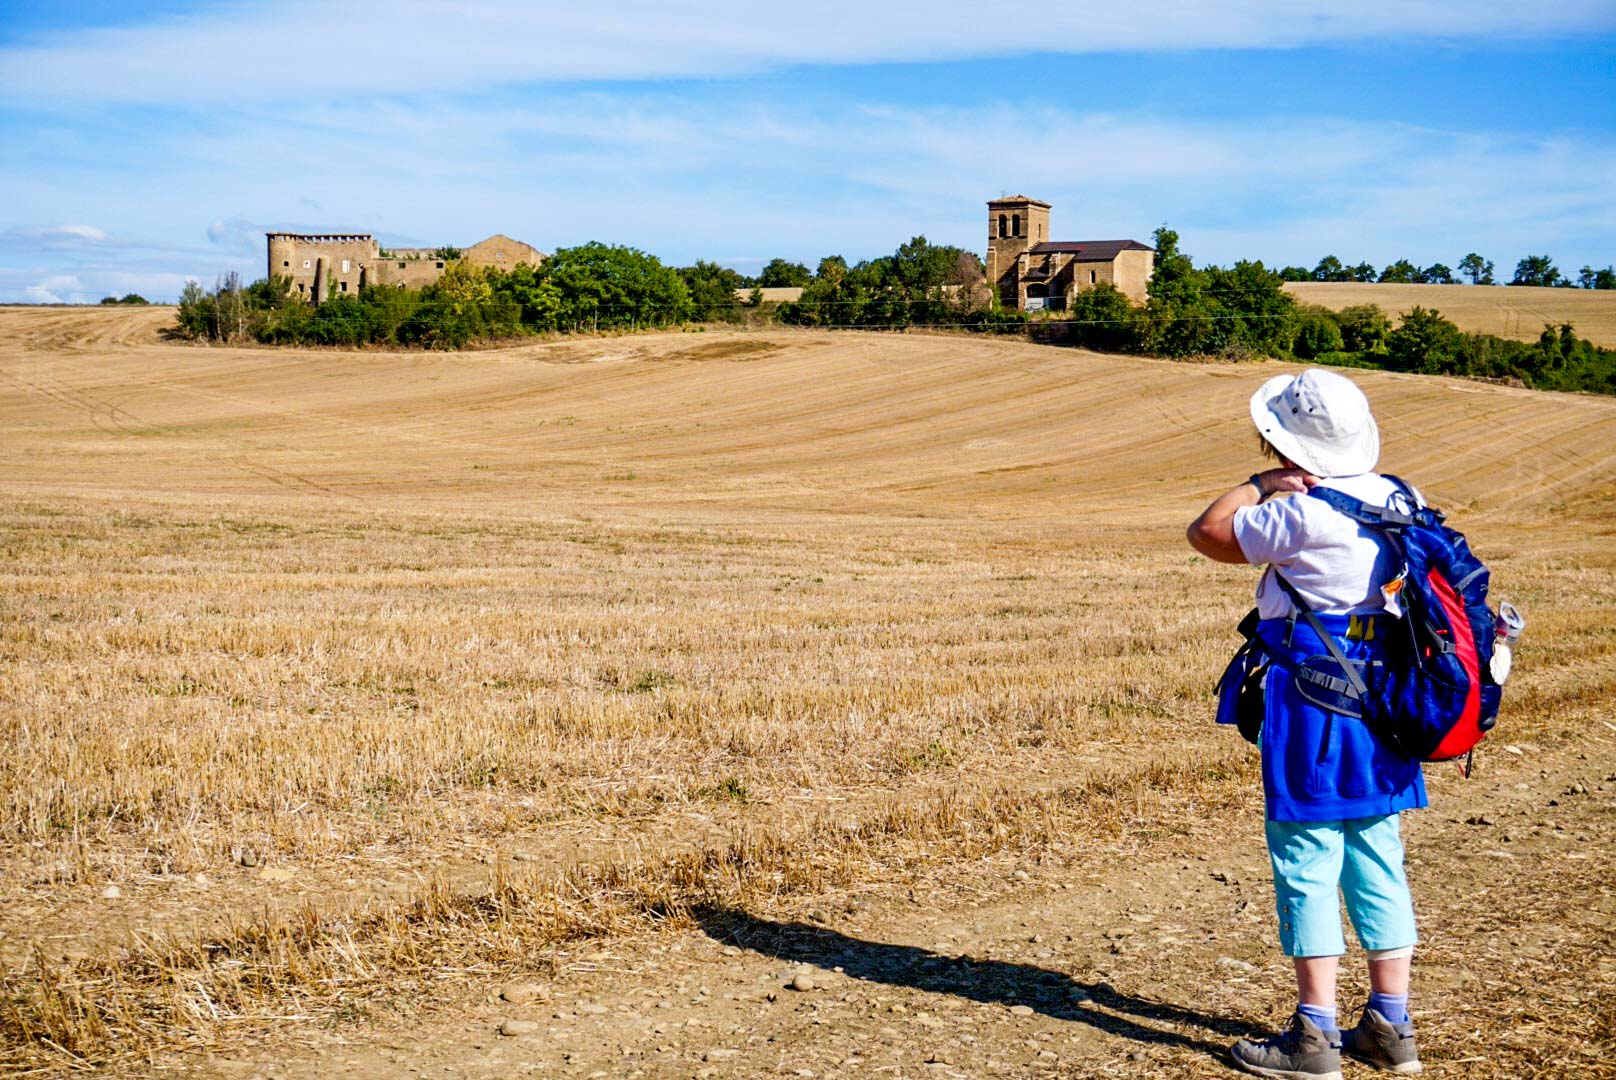 A person standing in a field and enjoying the view of a village on the Camino De Santiago.